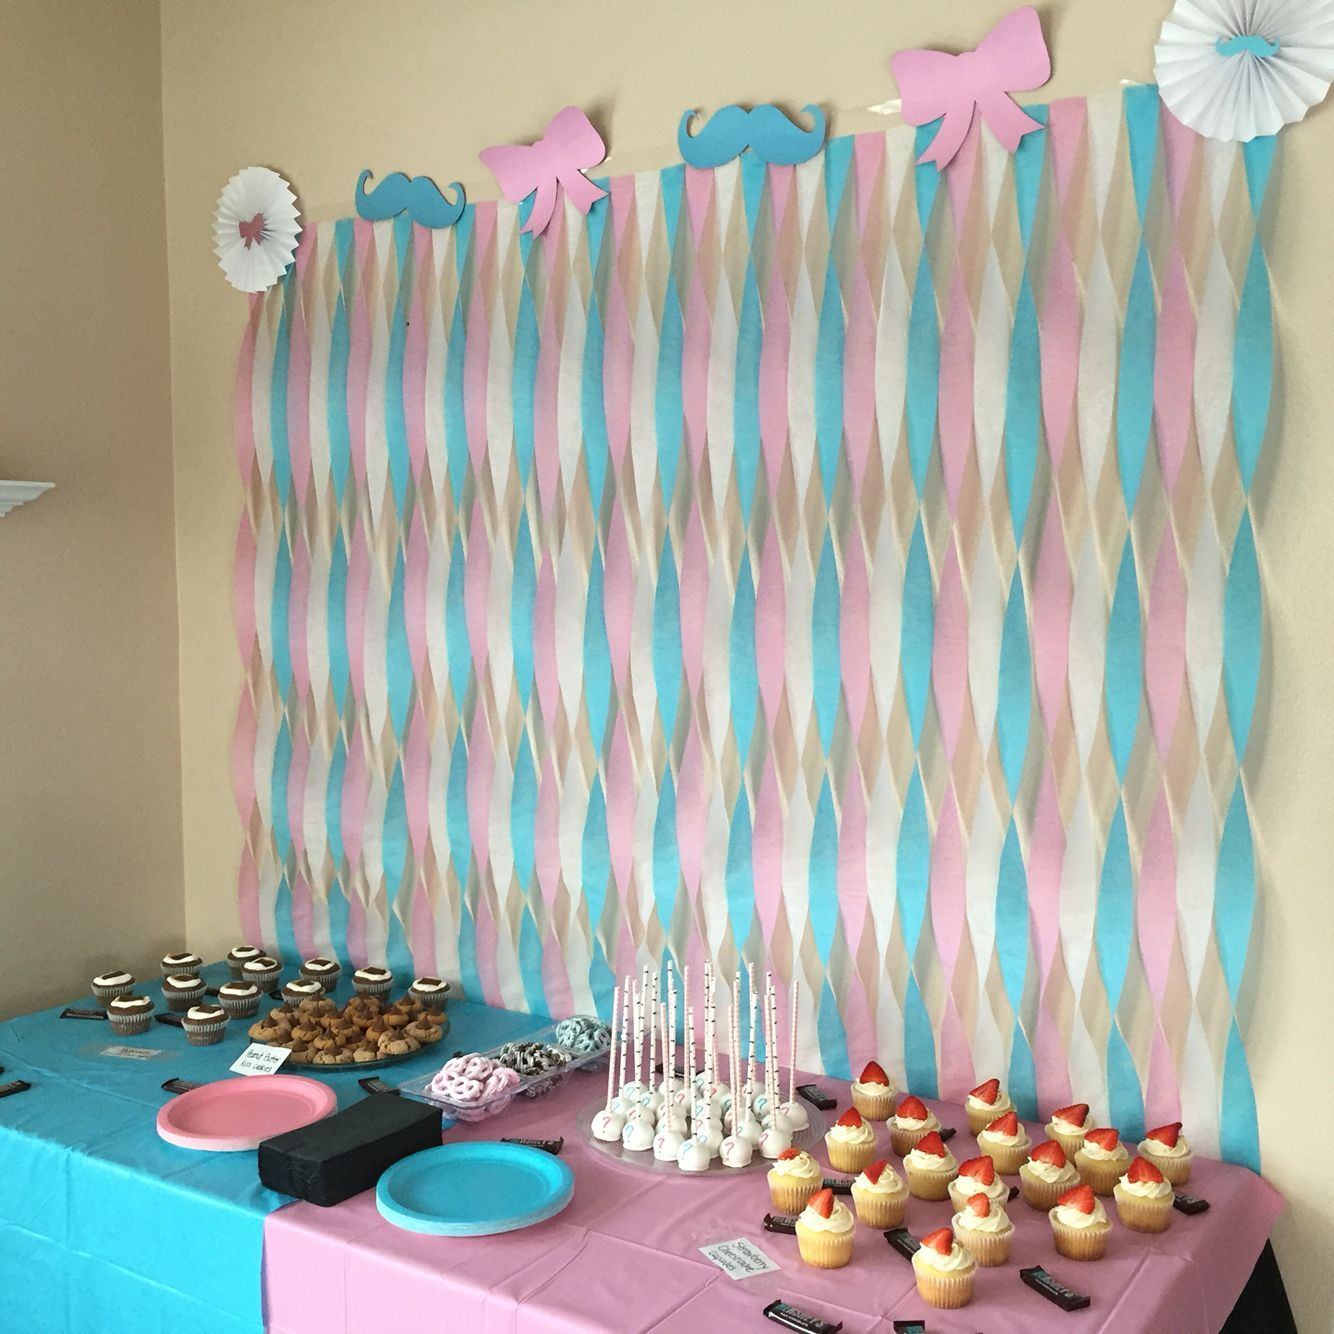 10 Gender Reveal Party Food Ideas That Are Mouth Watering Gender Rev Baby Gender Reveal Party Decorations Gender Reveal Party Gender Reveal Party Decorations